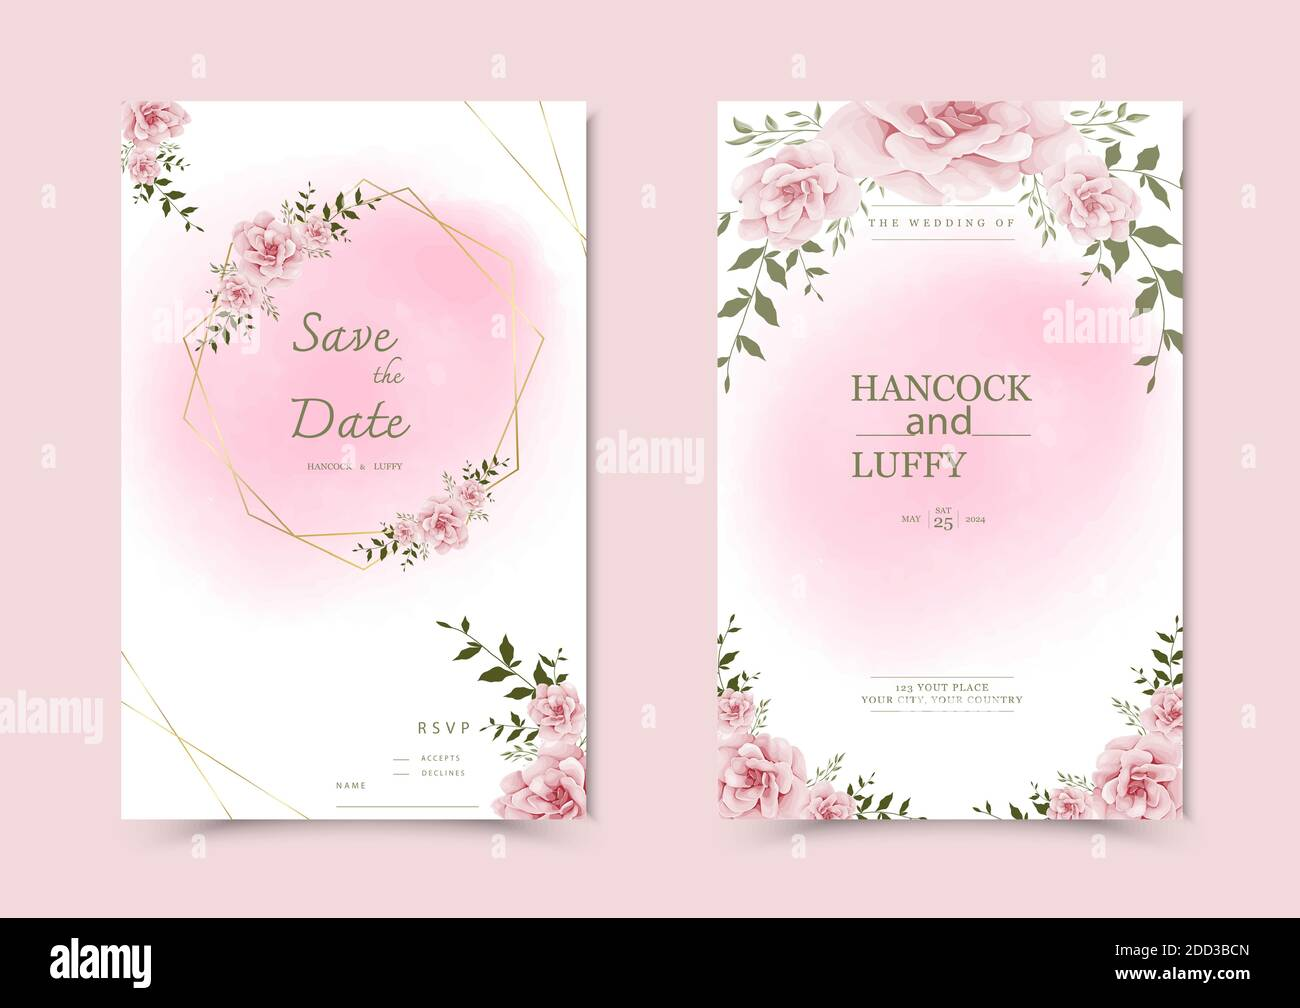 Beautiful Background With Watercolor Floral Wedding Invitation Card Template Stock Vector Image Art Alamy